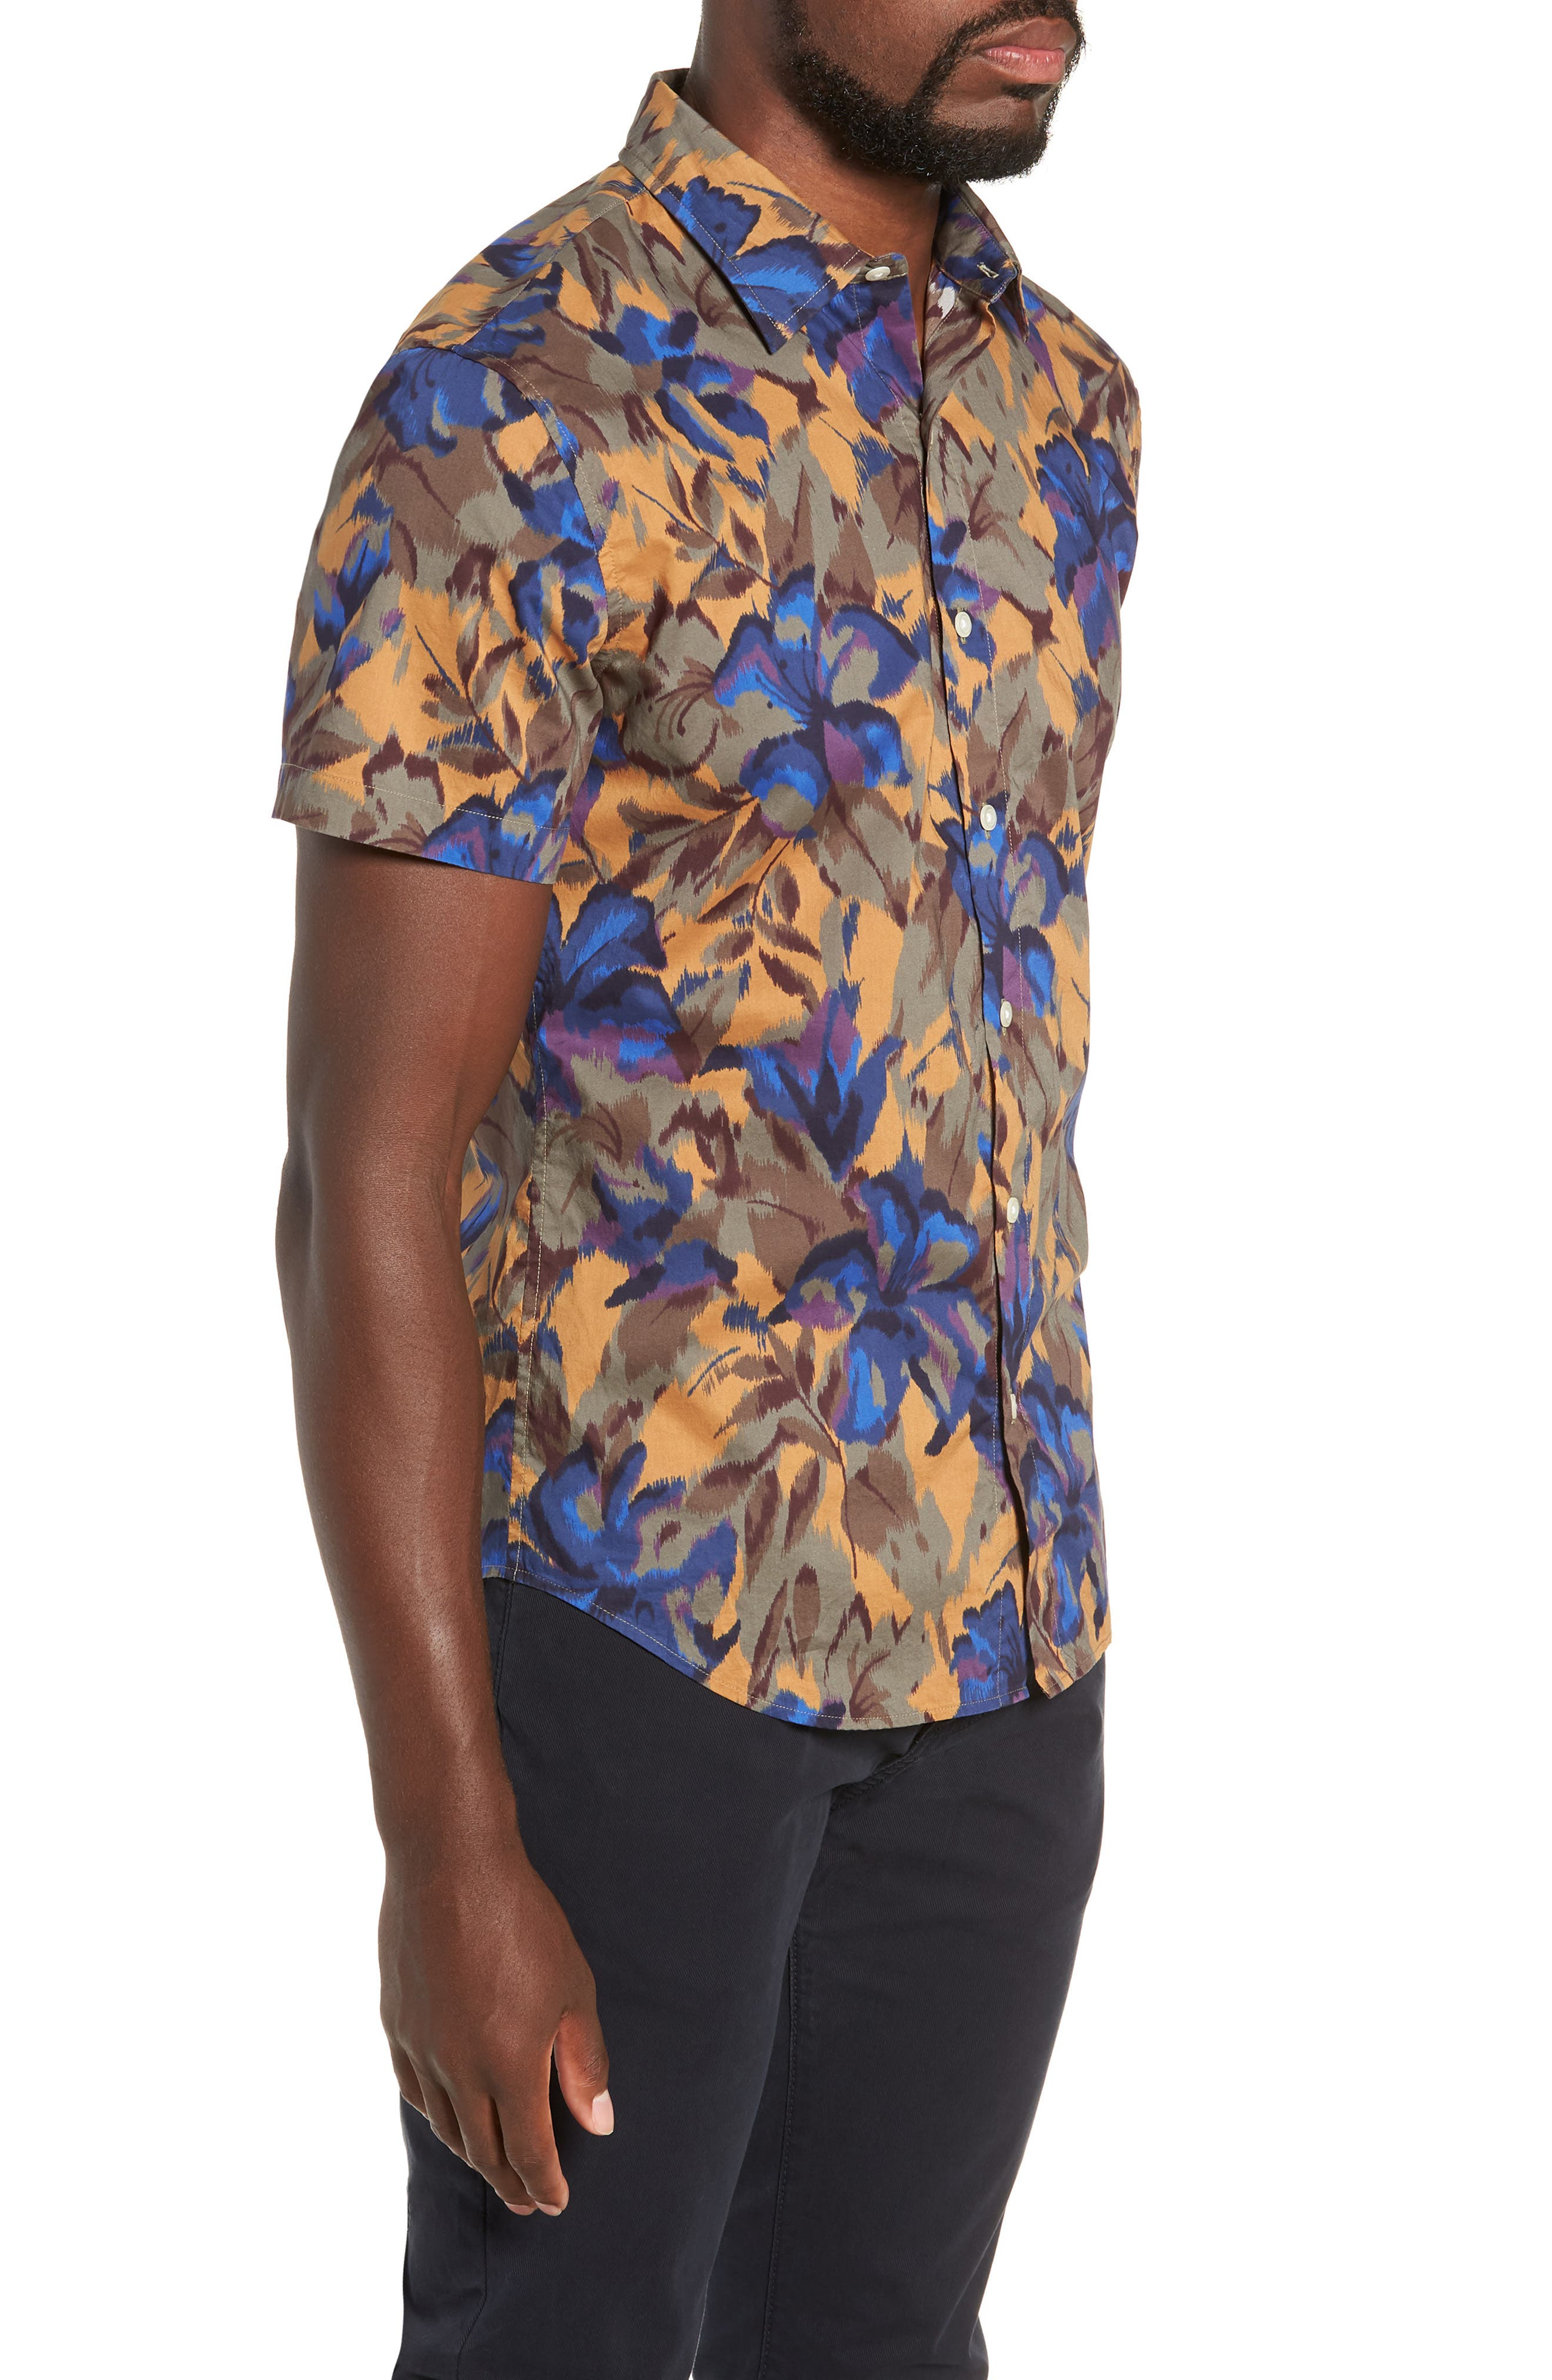 Riviera Slim Fit Sport Shirt,                             Alternate thumbnail 4, color,                             FADED FLORAL - AMBER TOPAZ